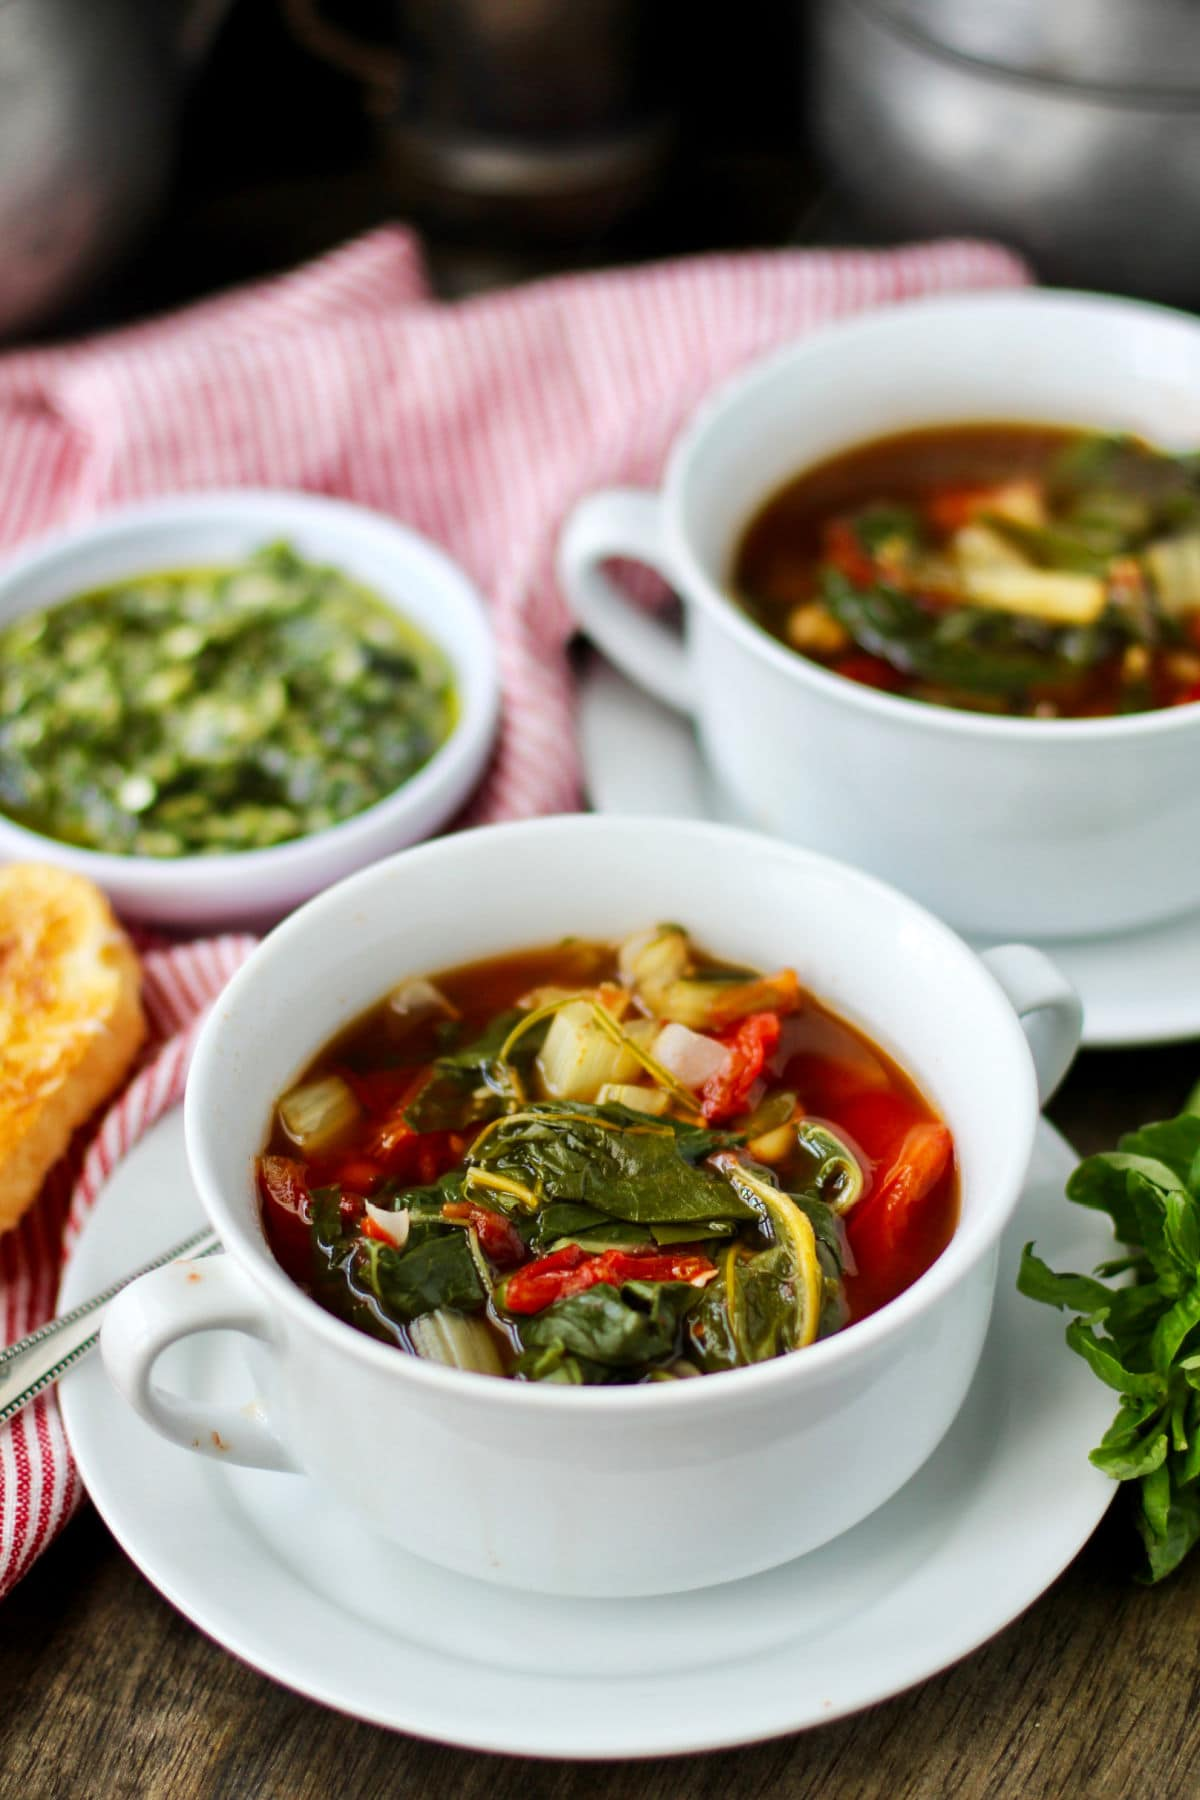 Swiss Chard and White Bean Soup with Basil Pesto on the side.